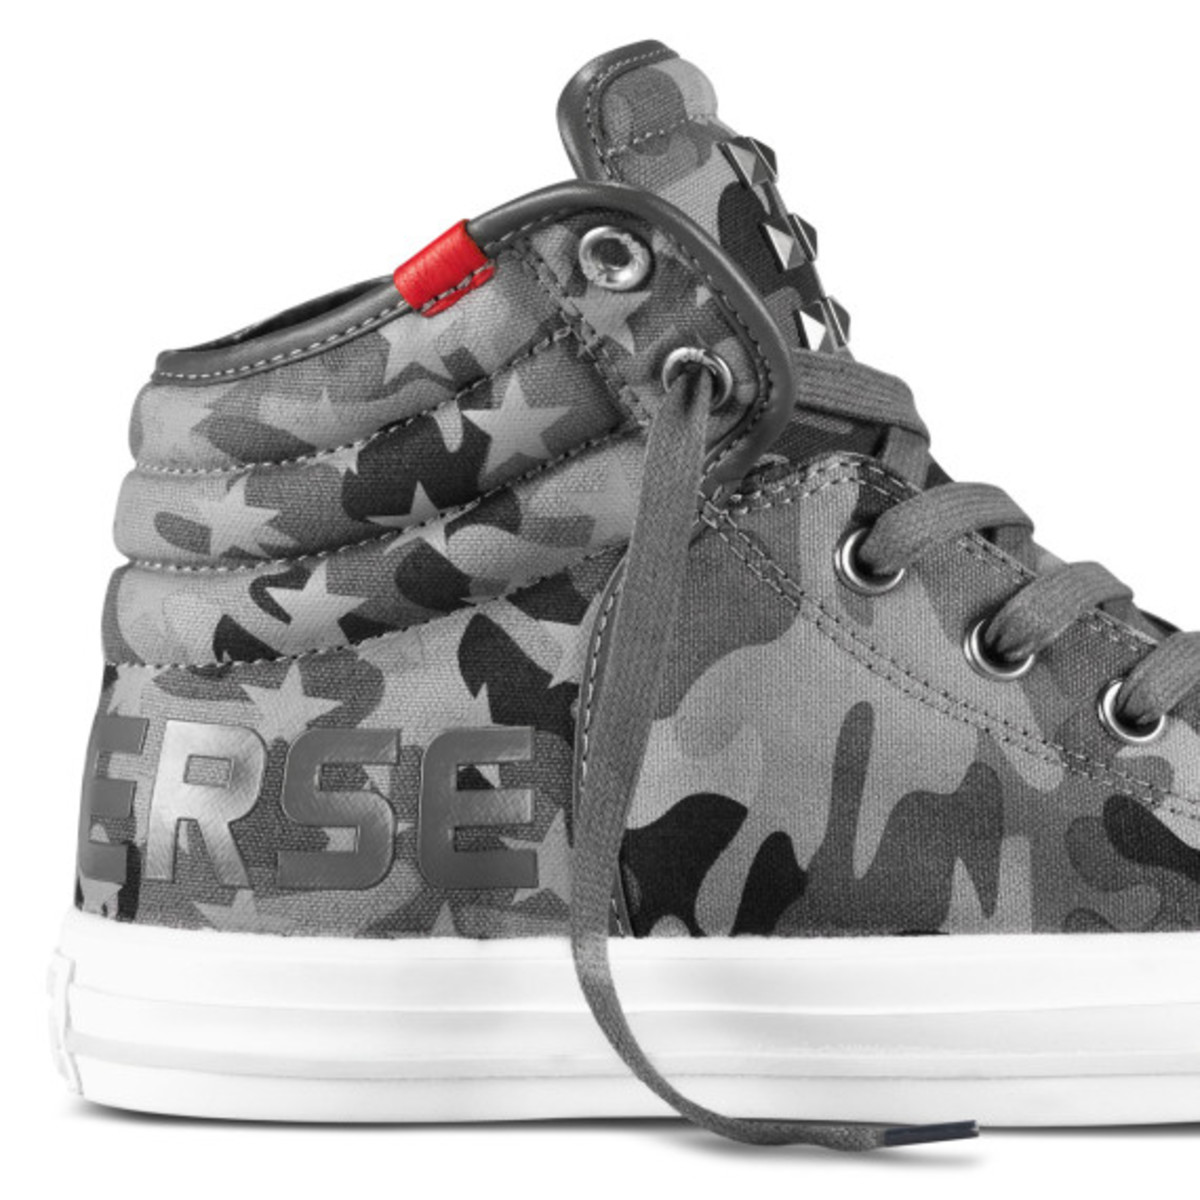 Wiz Khalifa x CONVERSE Chuck Taylor All Star Collection - 22